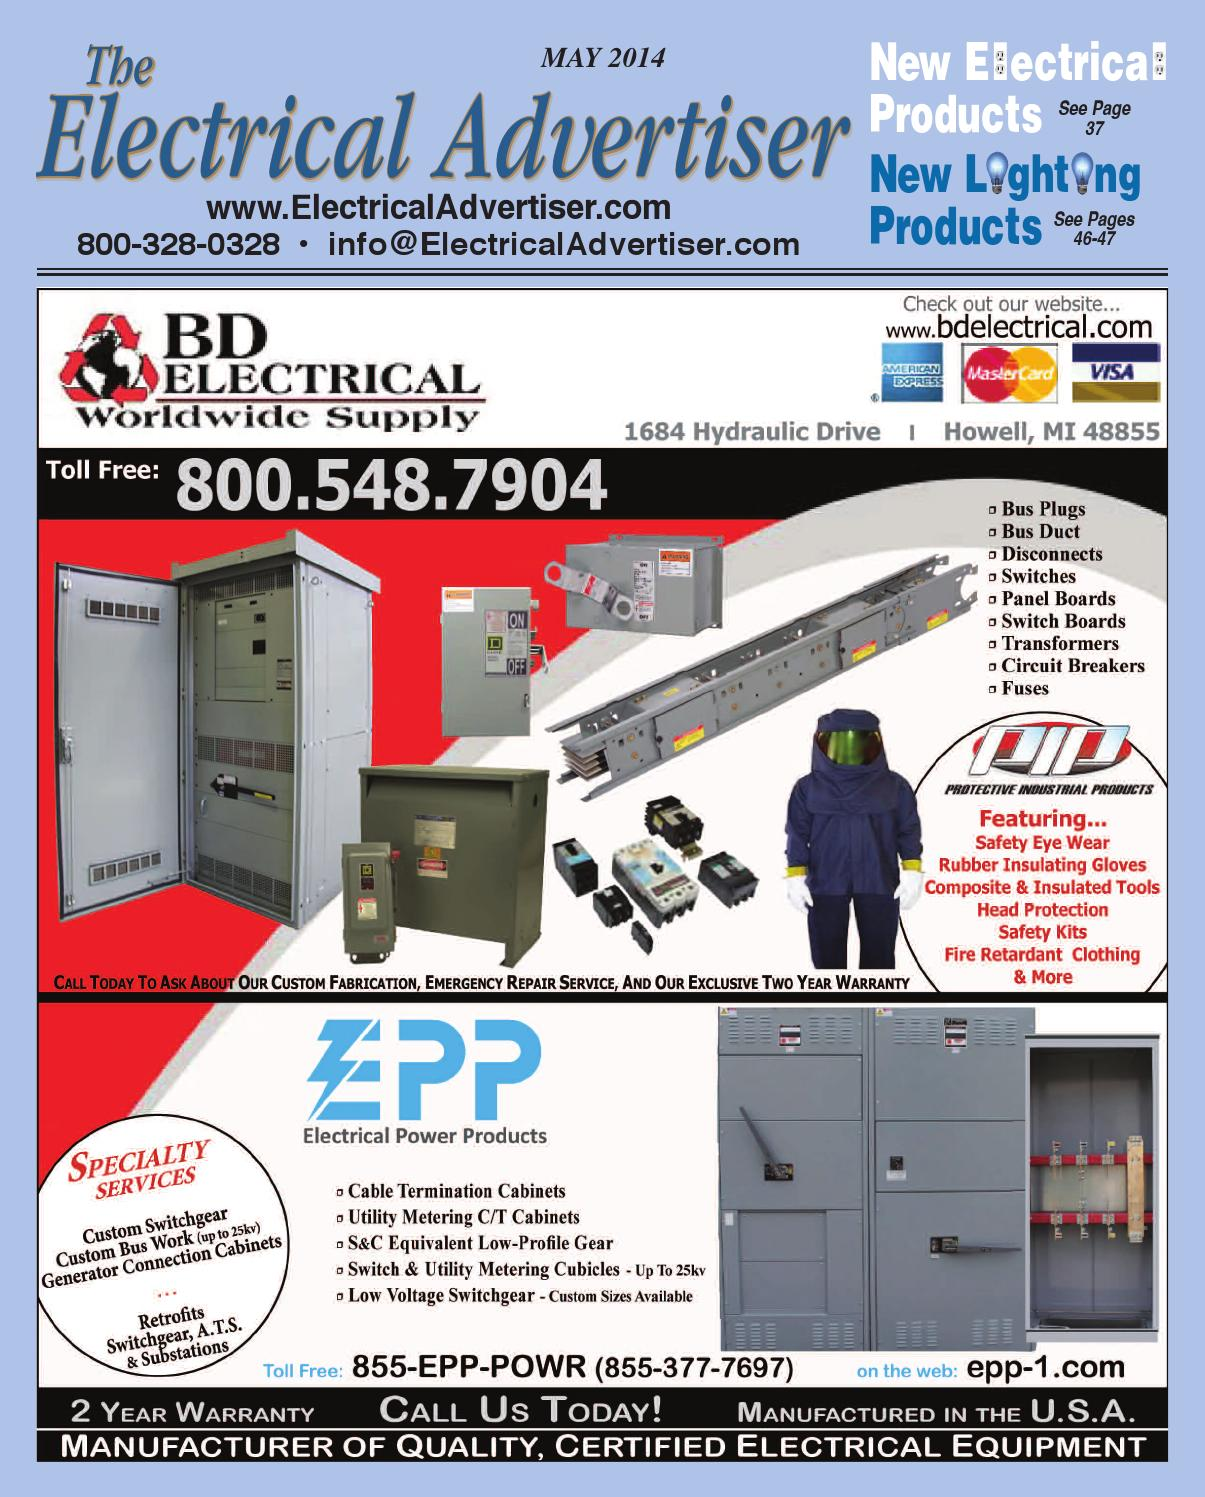 Electrical Advertiser May 2014 by Electrical Advertiser - issuu